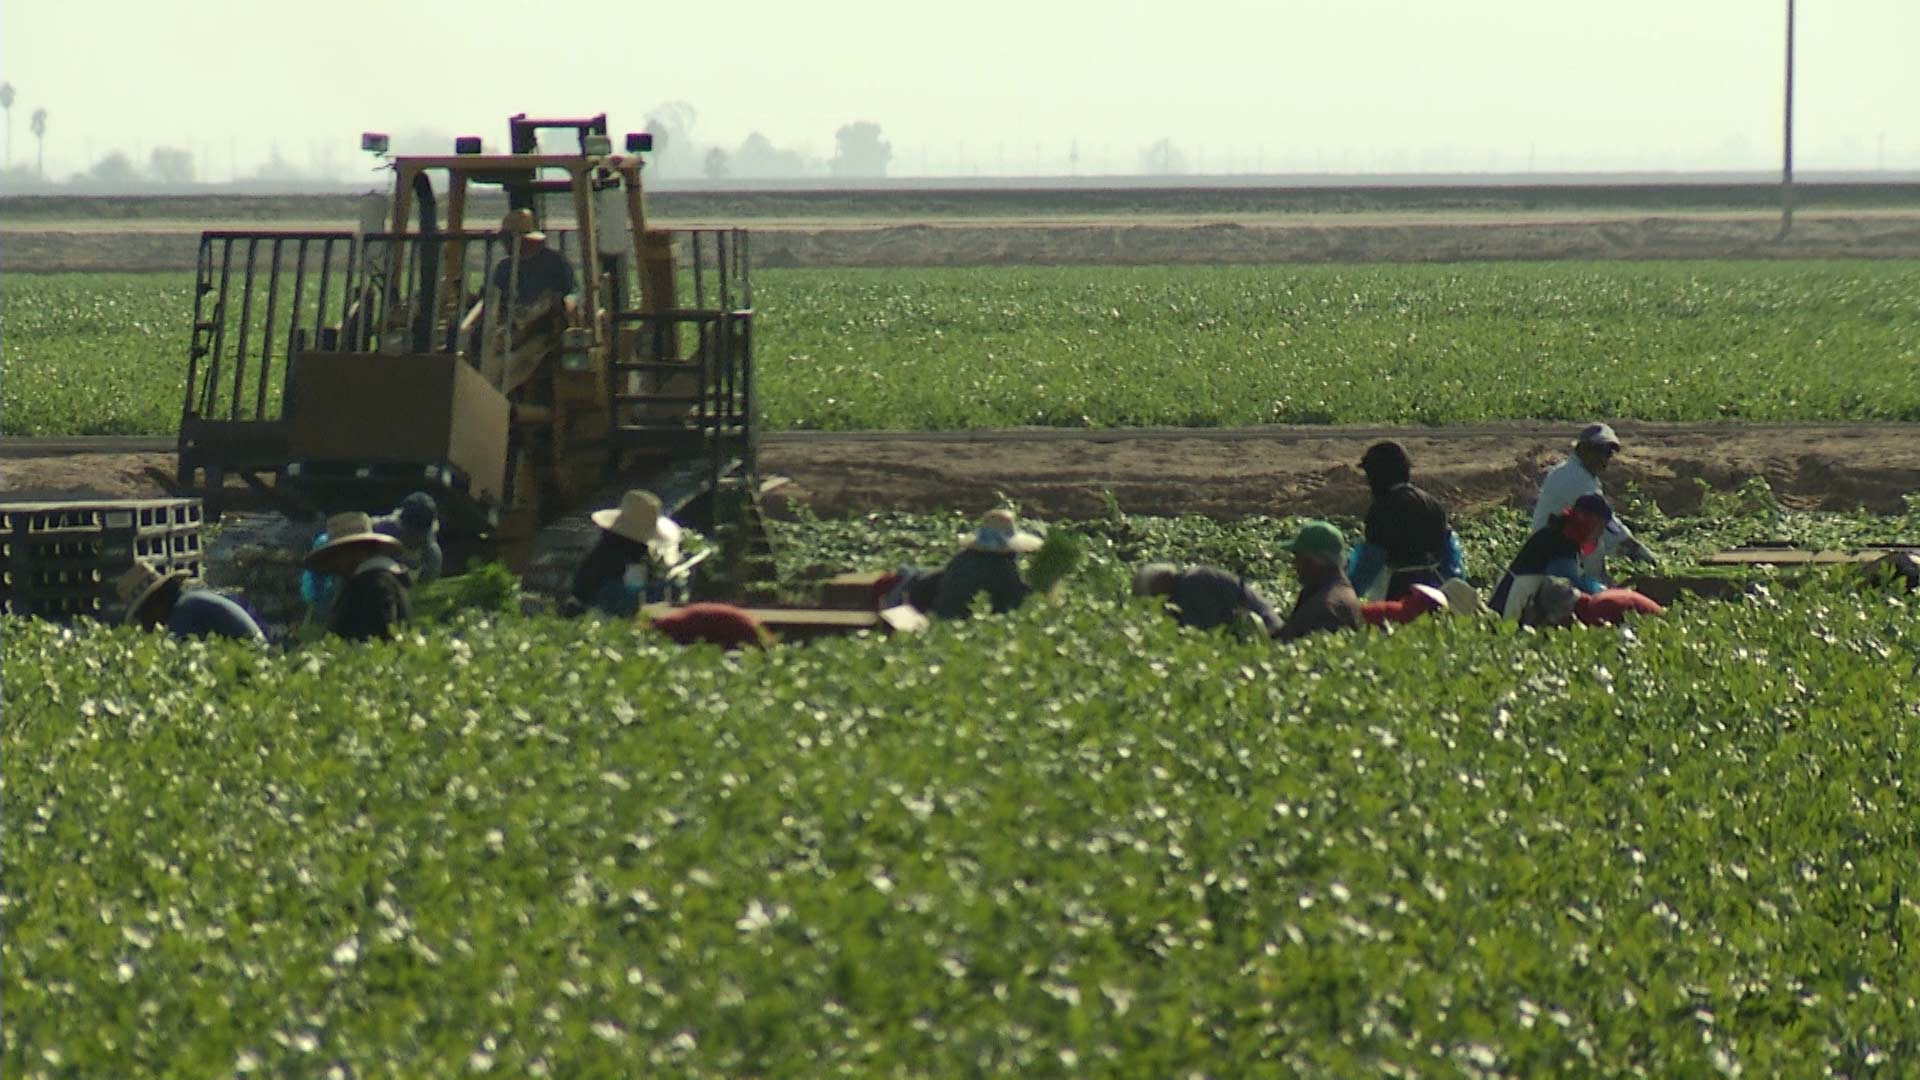 Workers harvest greens alongside farm equipment in the Yuma area.